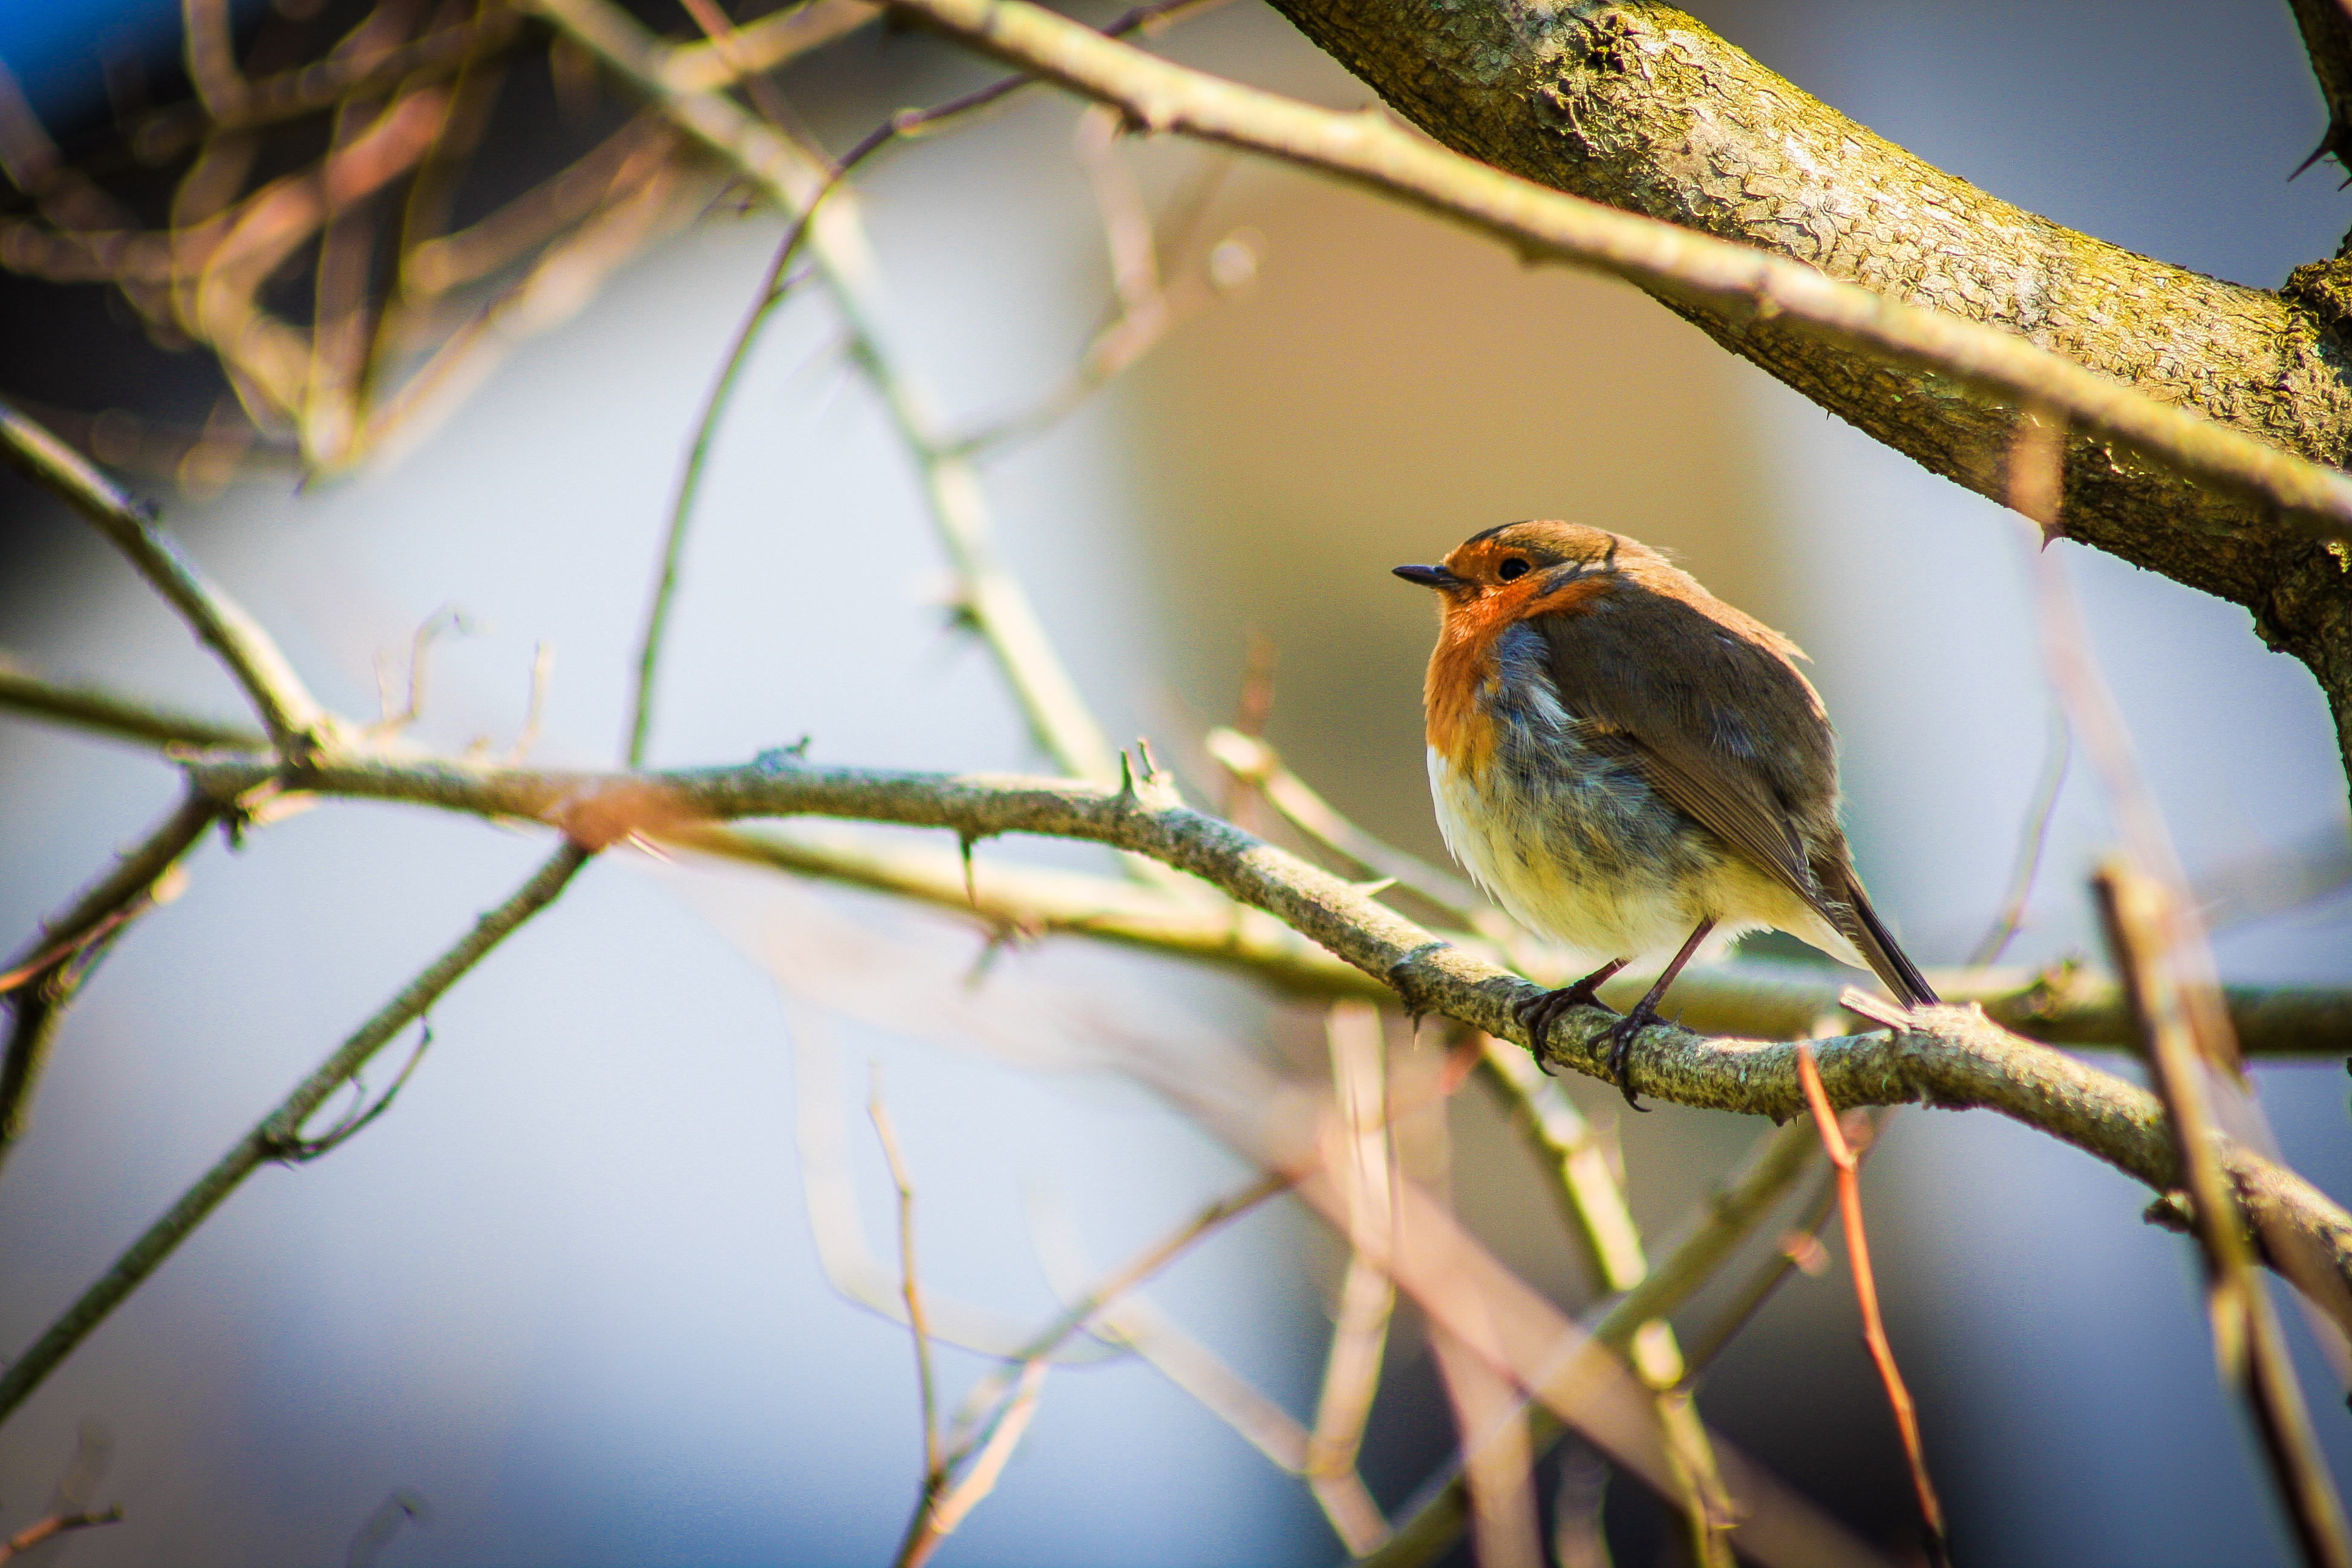 Mums Favourite - Robin